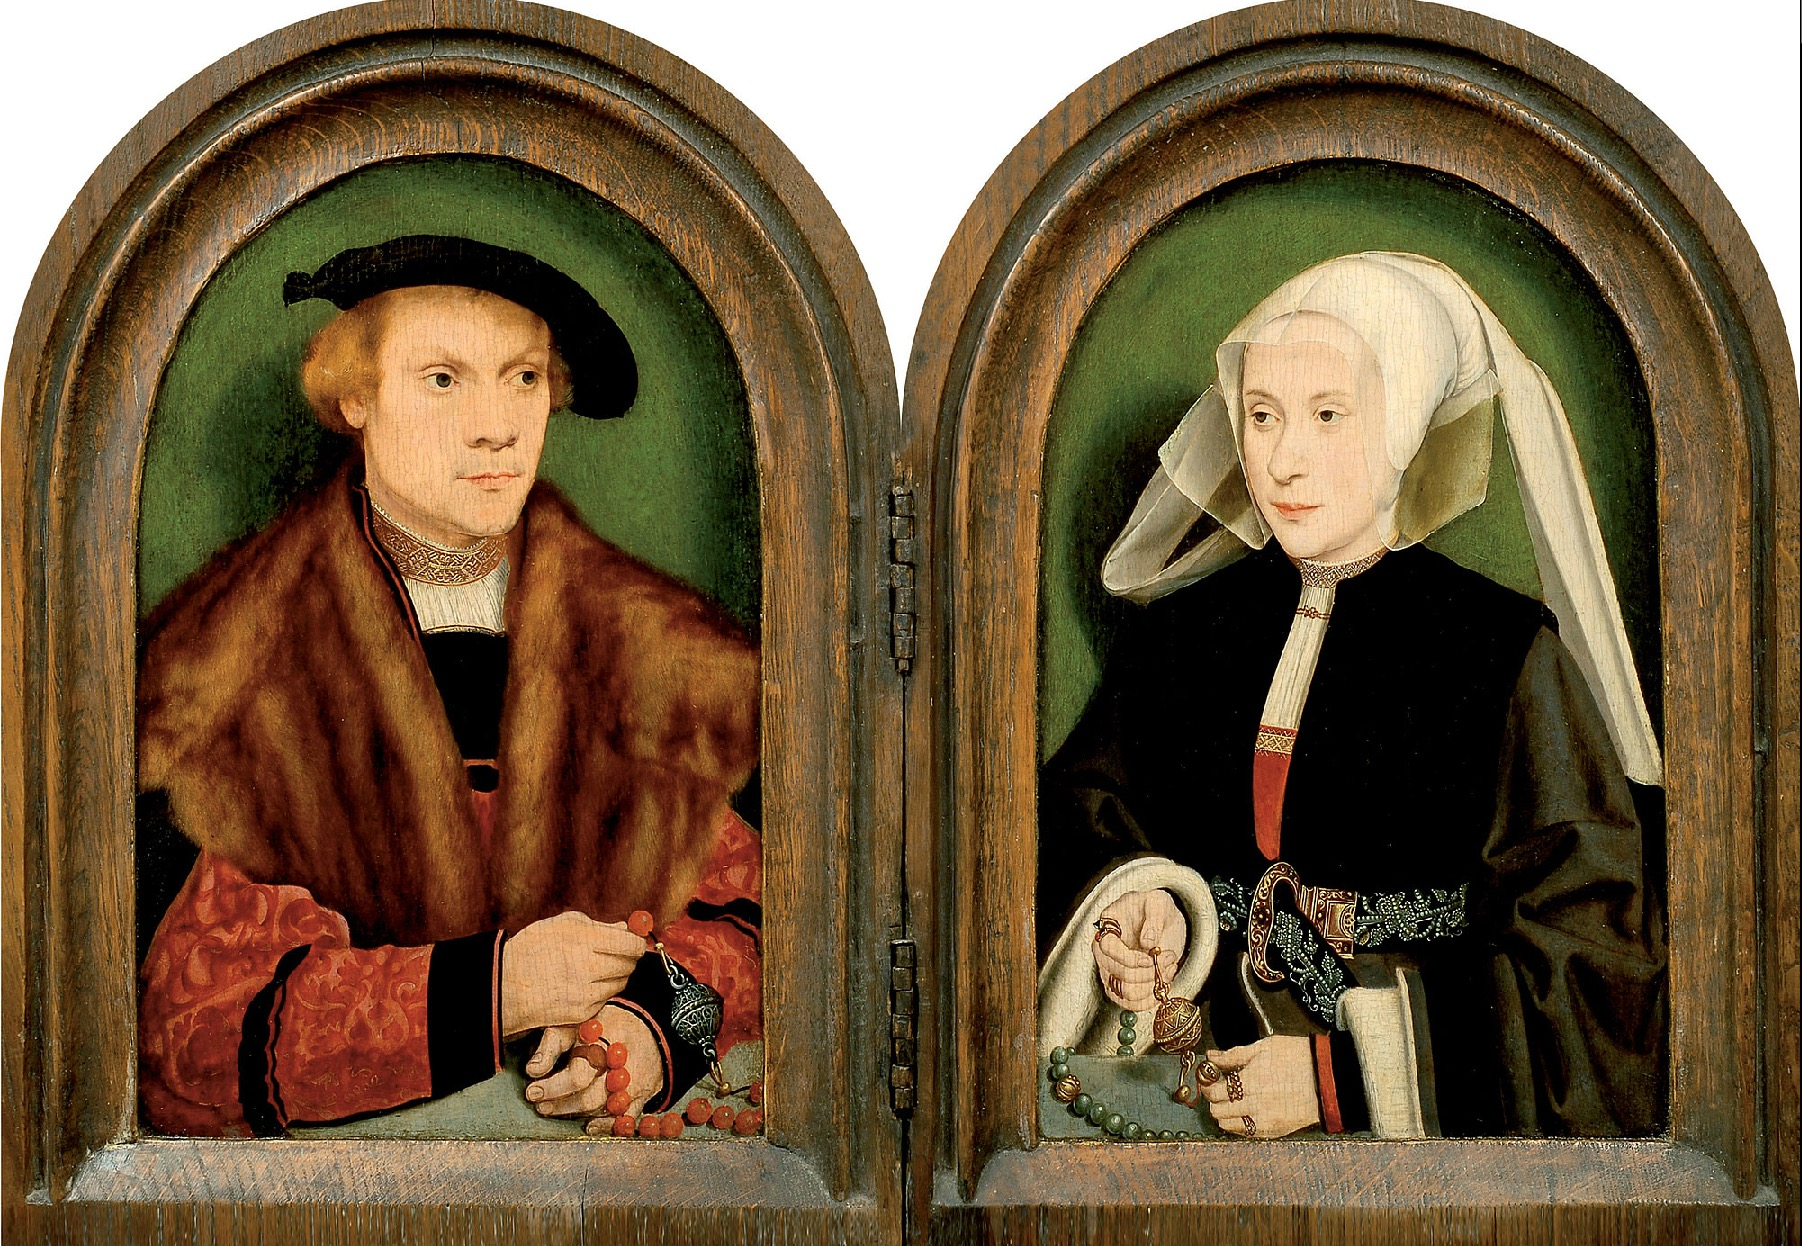 Barthel Bruyn l Ancien 1534 ca Portrait Diptych Of A Bourgeois Couple coll part